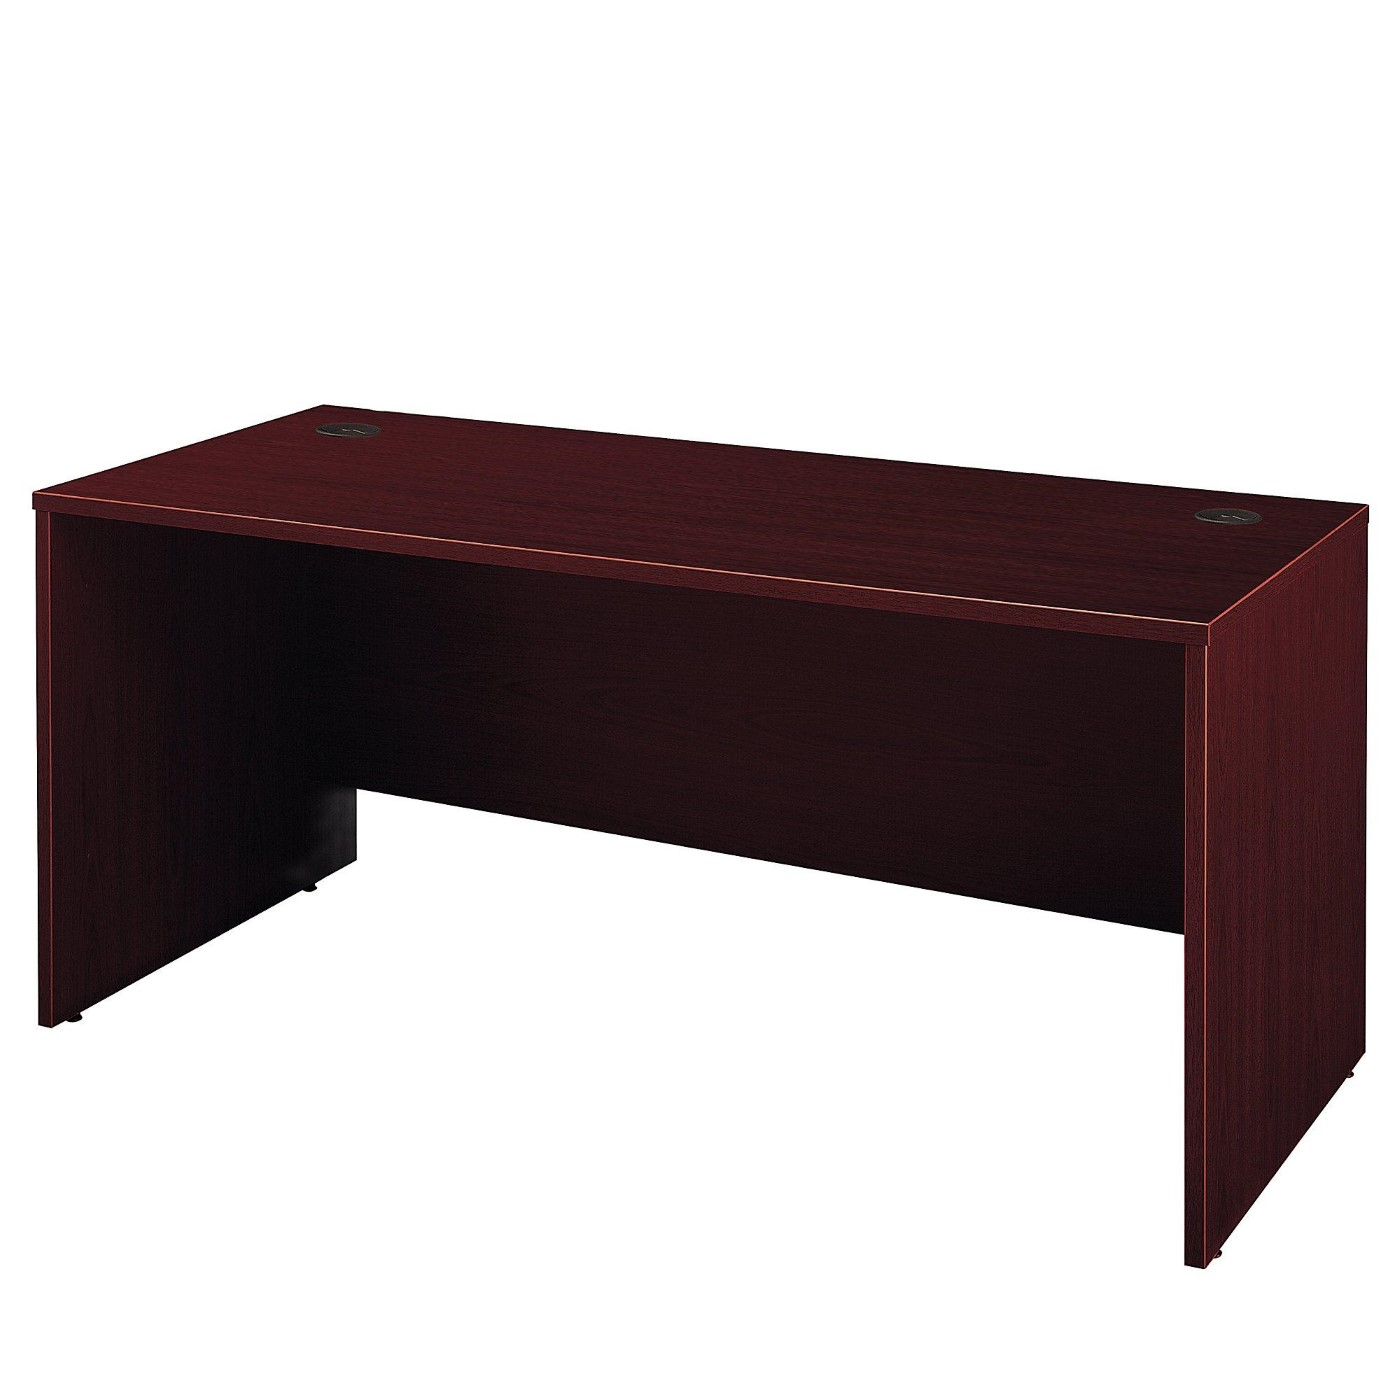 <font color=#c60><b>BUSH BUSINESS FURNITURE SERIES C 66W X 30D OFFICE DESK. FREE SHIPPING</font></b></font></b>